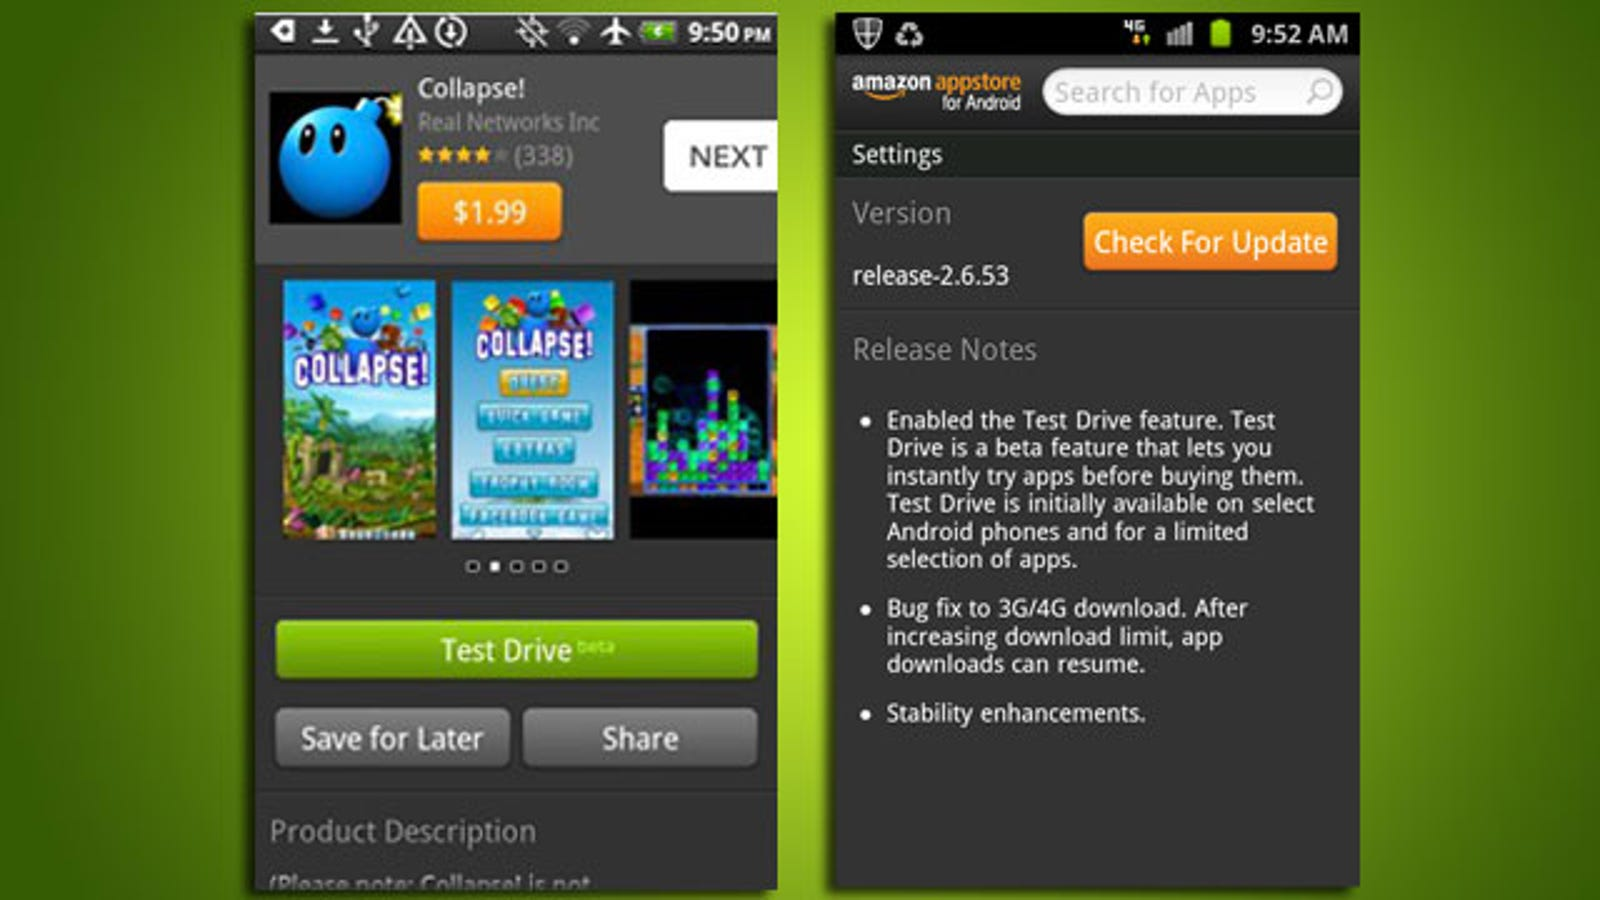 Amazon Appstore Lets You Test Drive Apps Before Buying Them